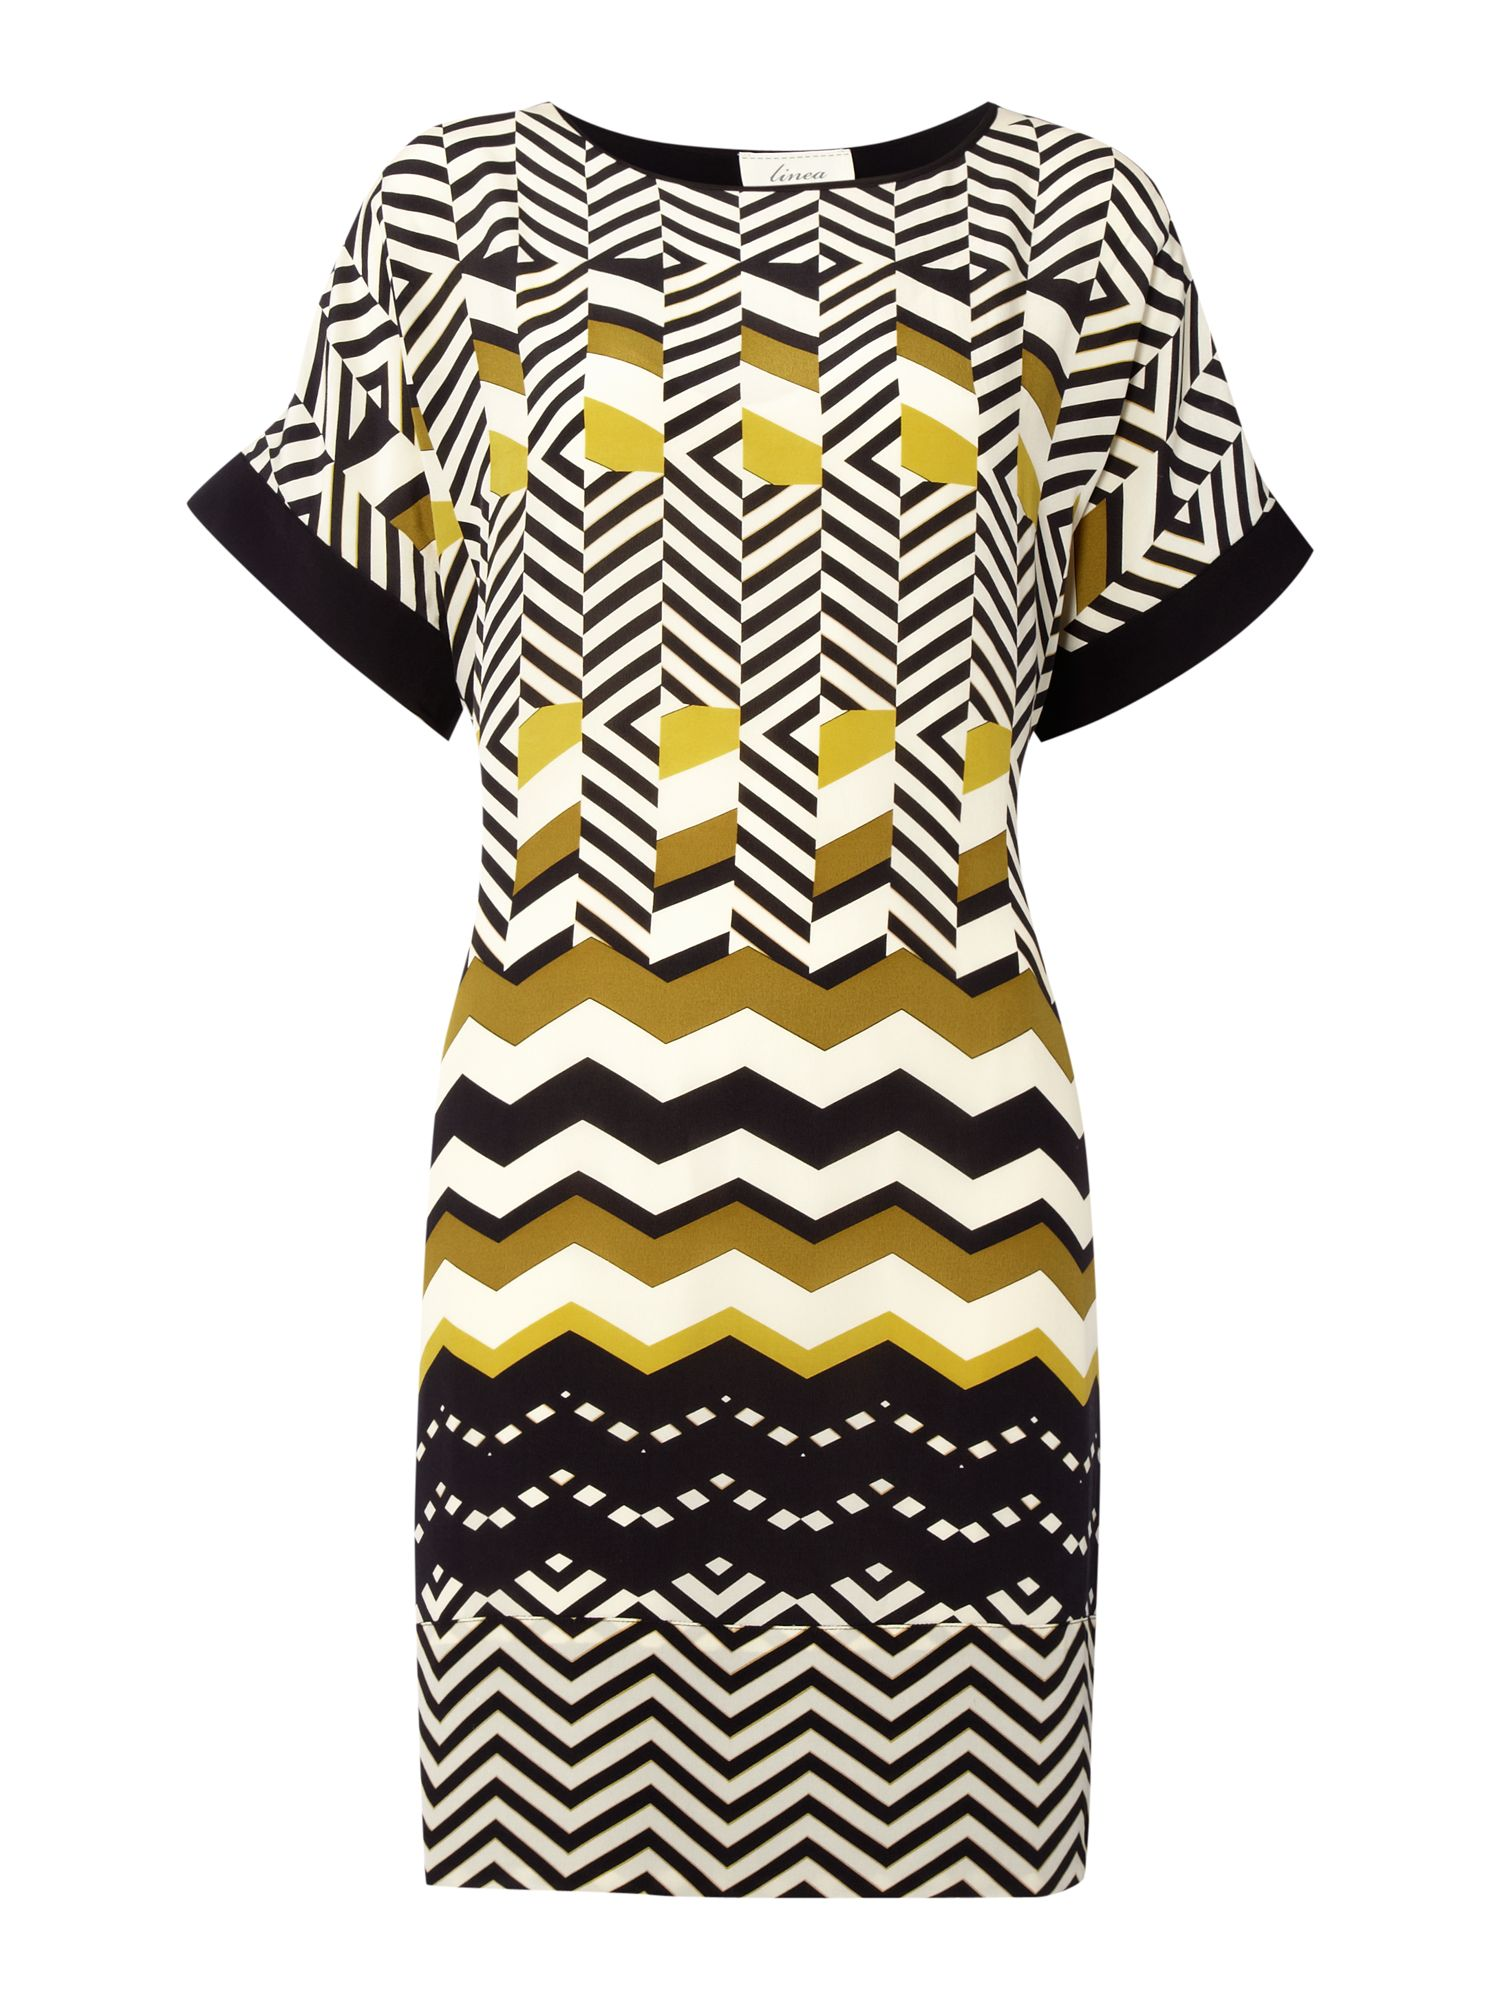 Chevron print tunic dress